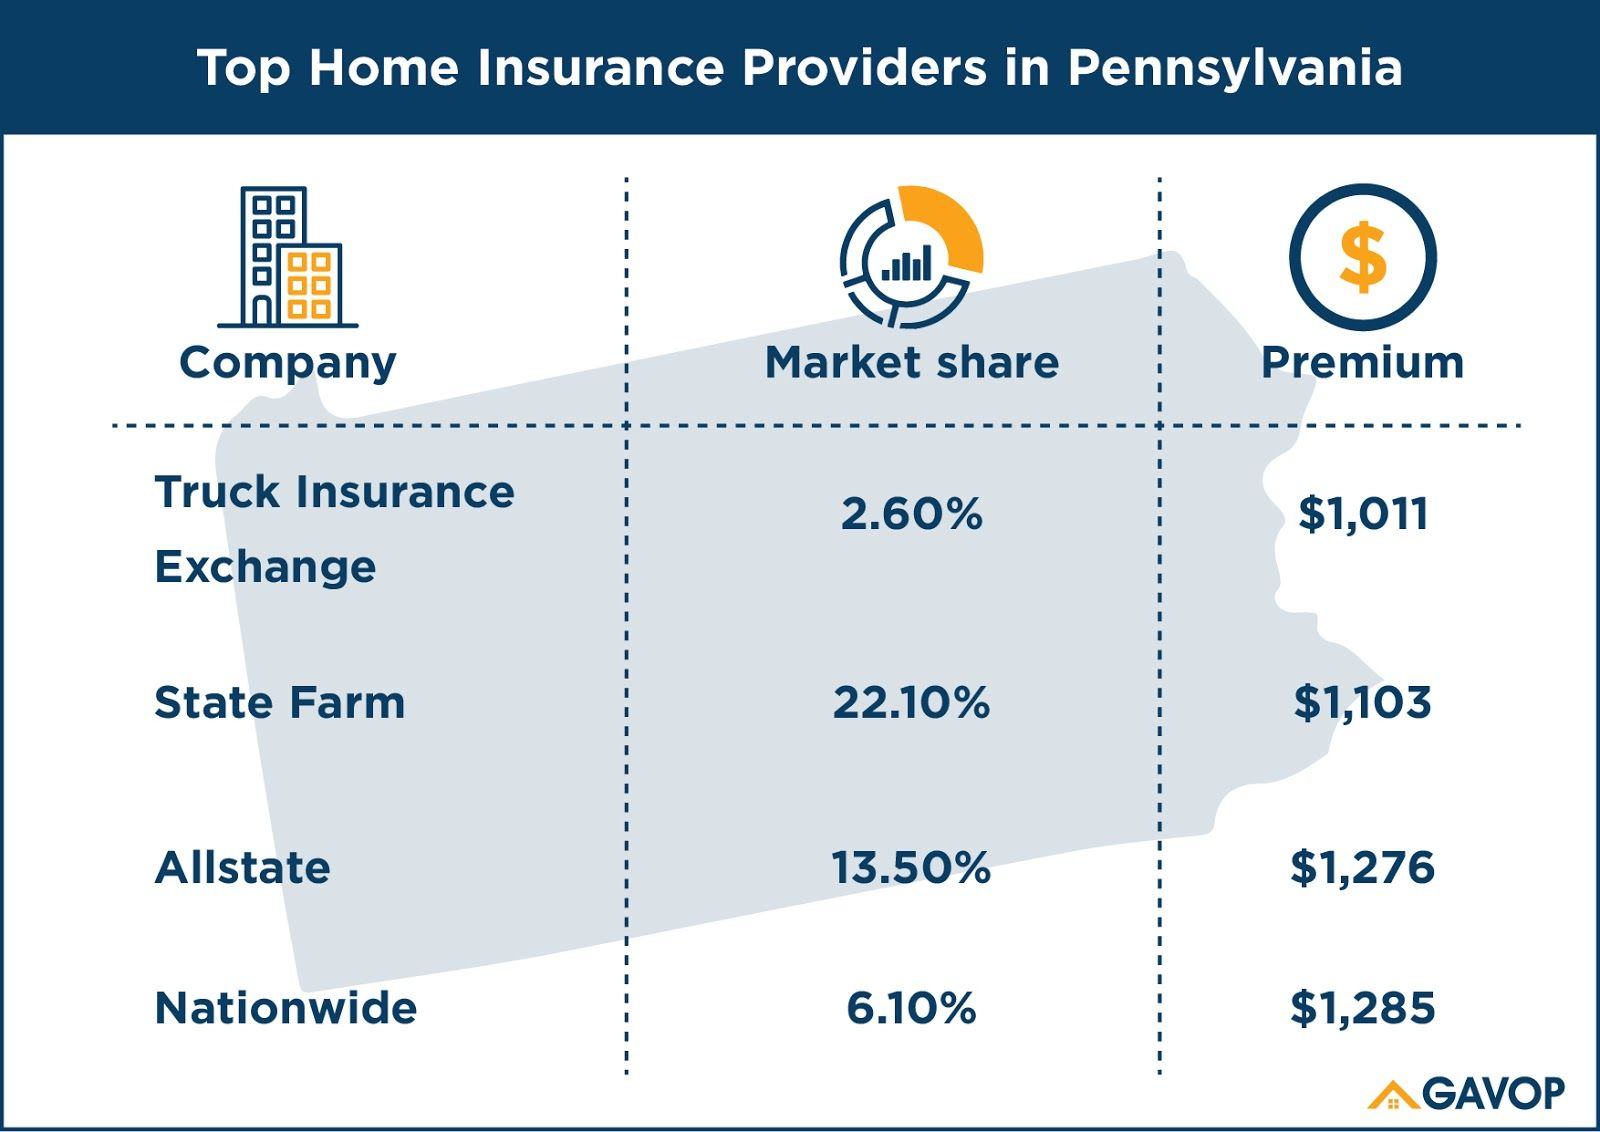 Home Insurance Rates in Pennsylvania Show a Difference of